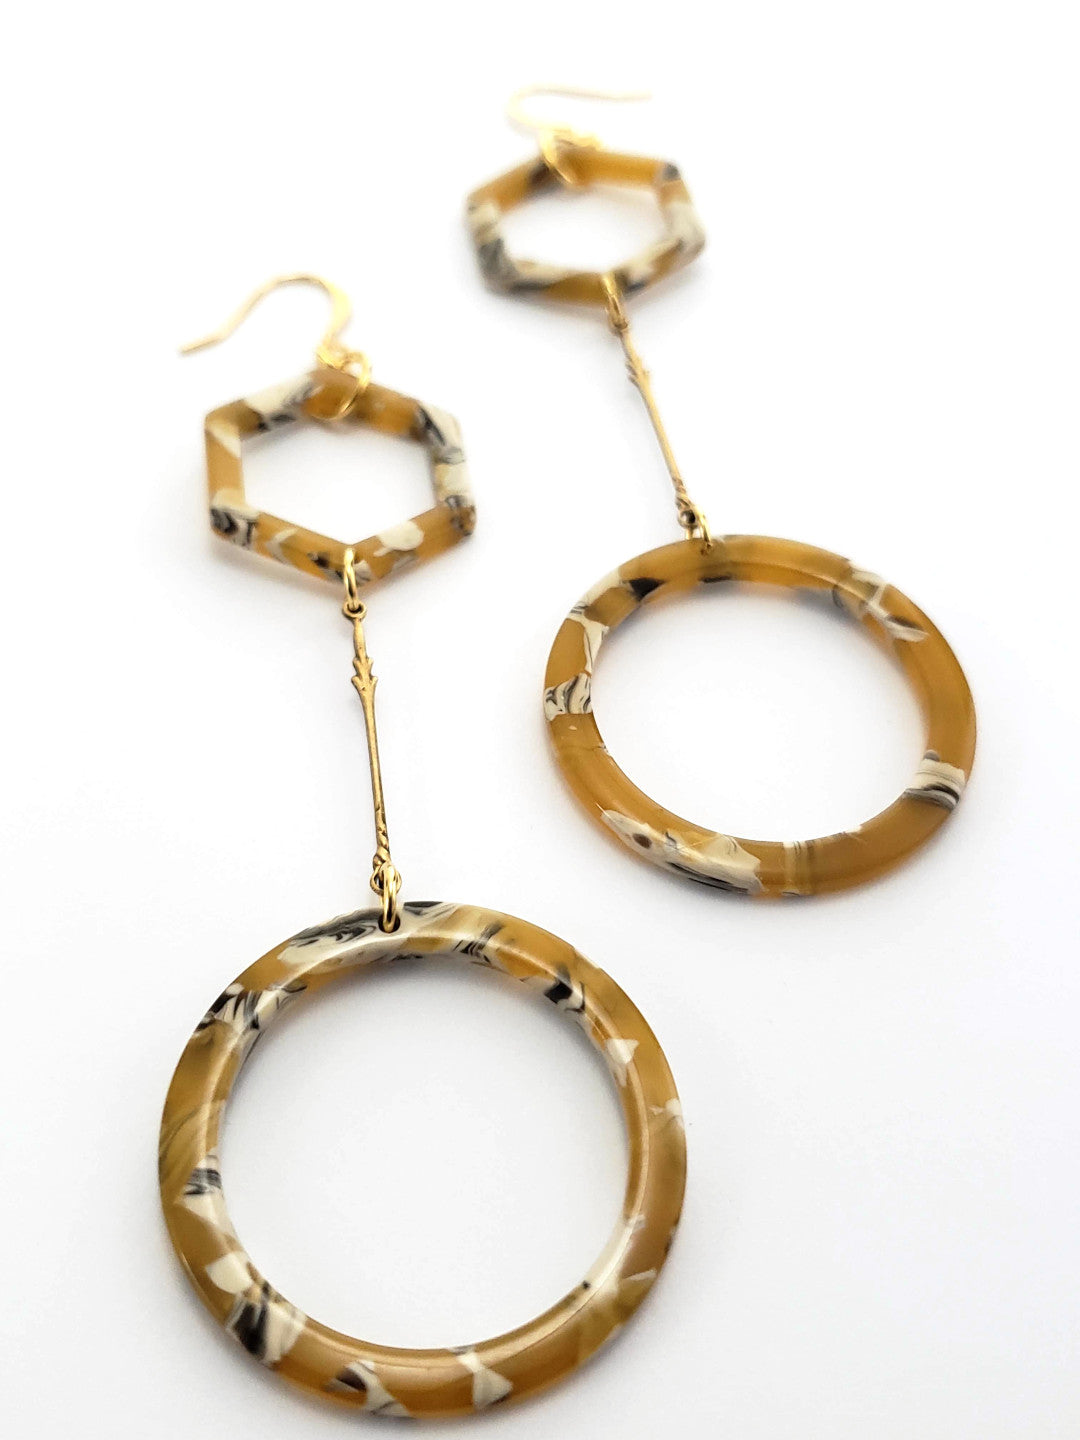 Italian Saffron Resin Hoop Earrings